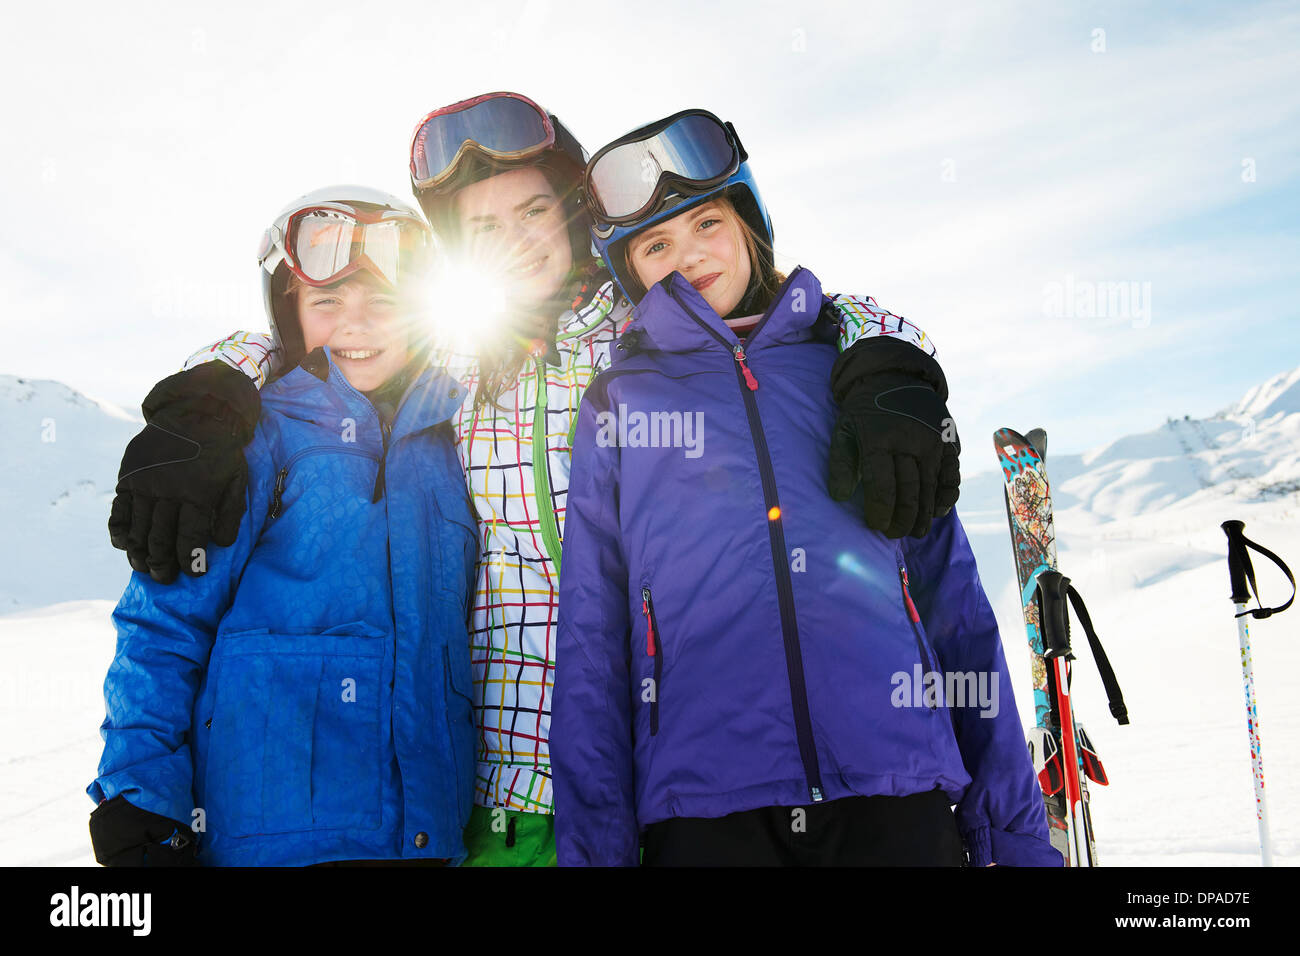 Portrait of brother and sisters in snow, Les Arcs, Haute-Savoie, France Stock Photo